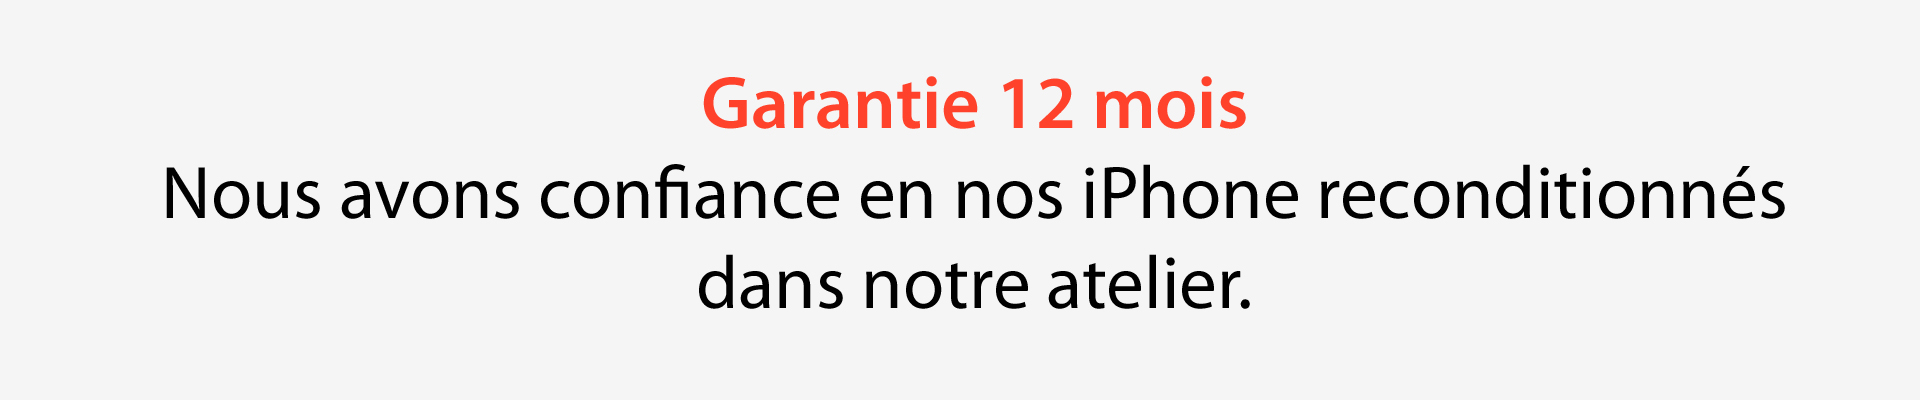 garantie 12 mois iPhone XS max reconditionné